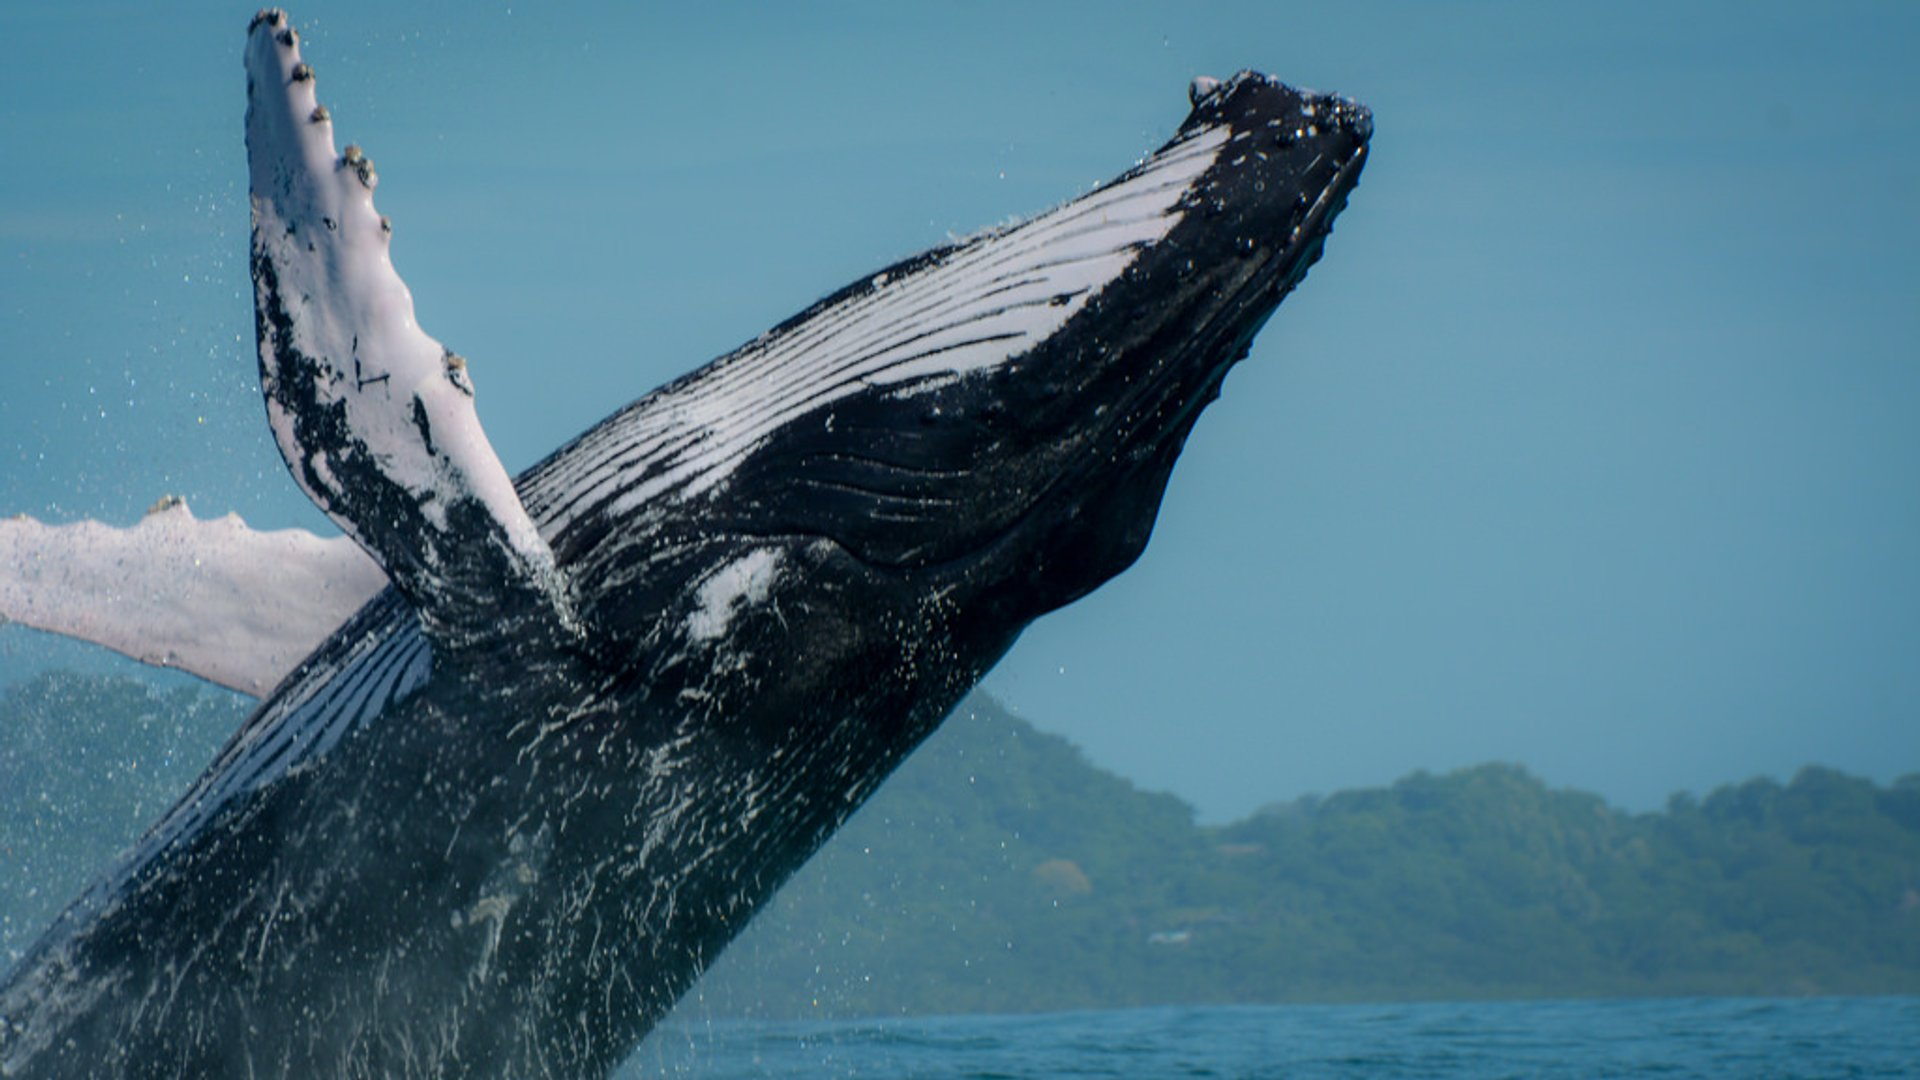 Whale Watching in Costa Rica 2020 - Best Time